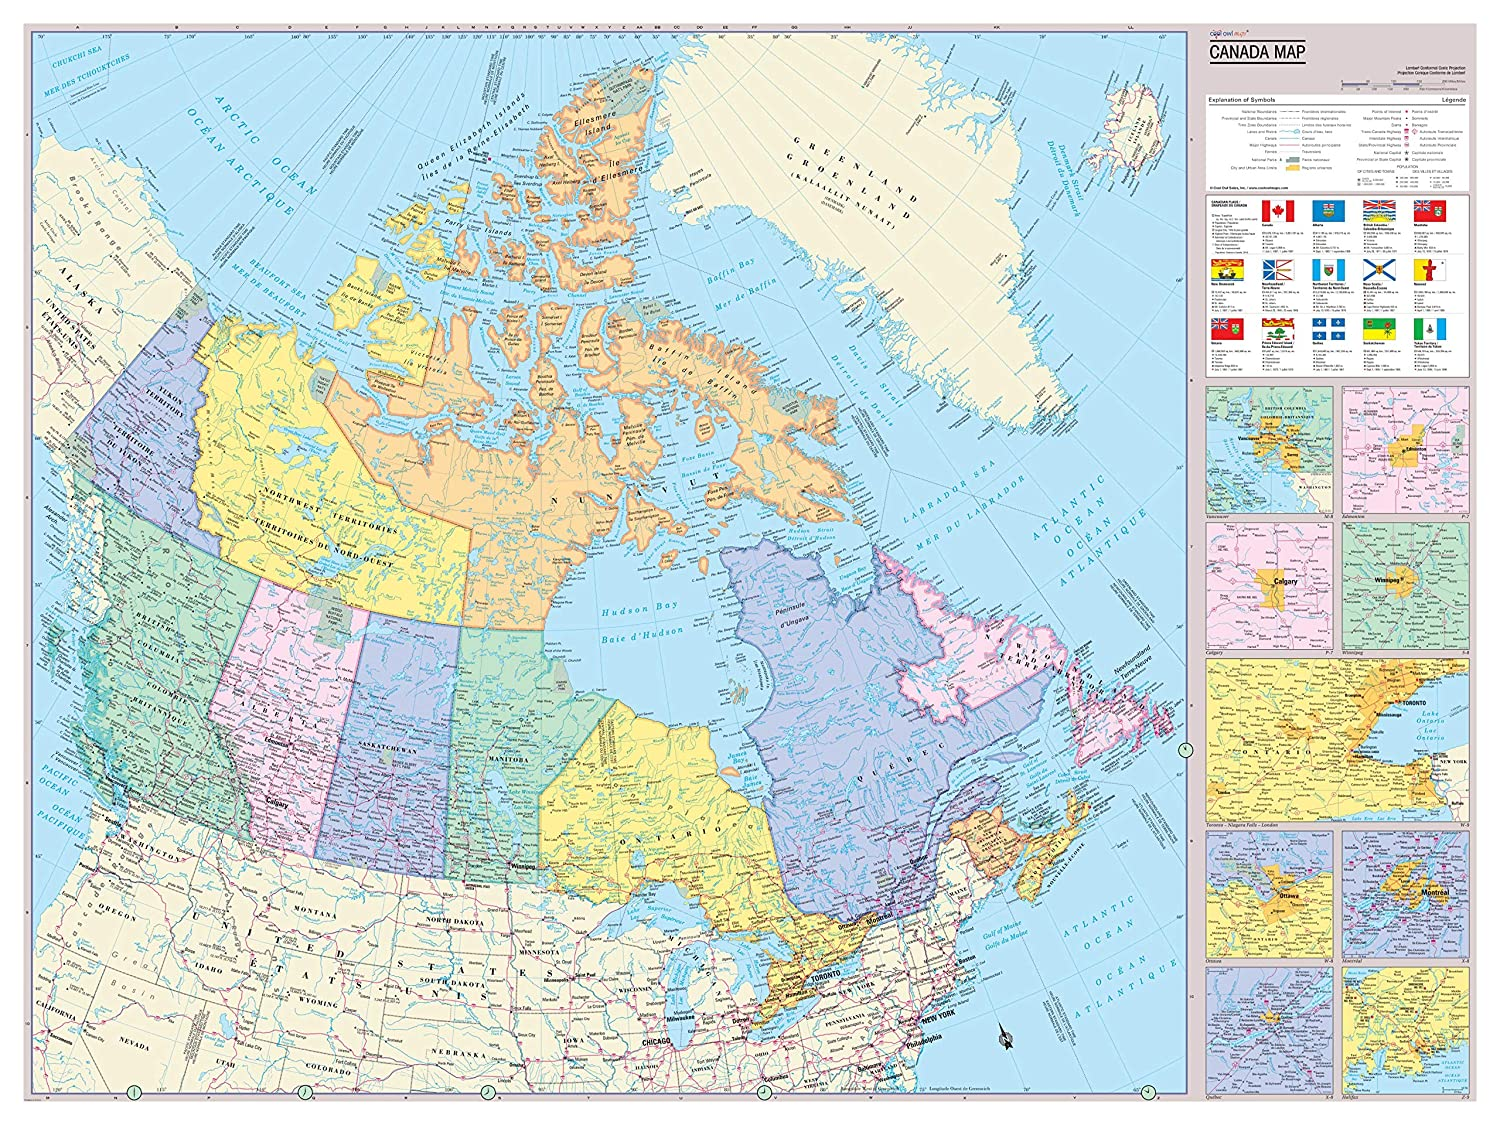 Canada Map Sales.Cool Owl Maps Canada Wall Map Poster Laminated 32x24 Cool Owl